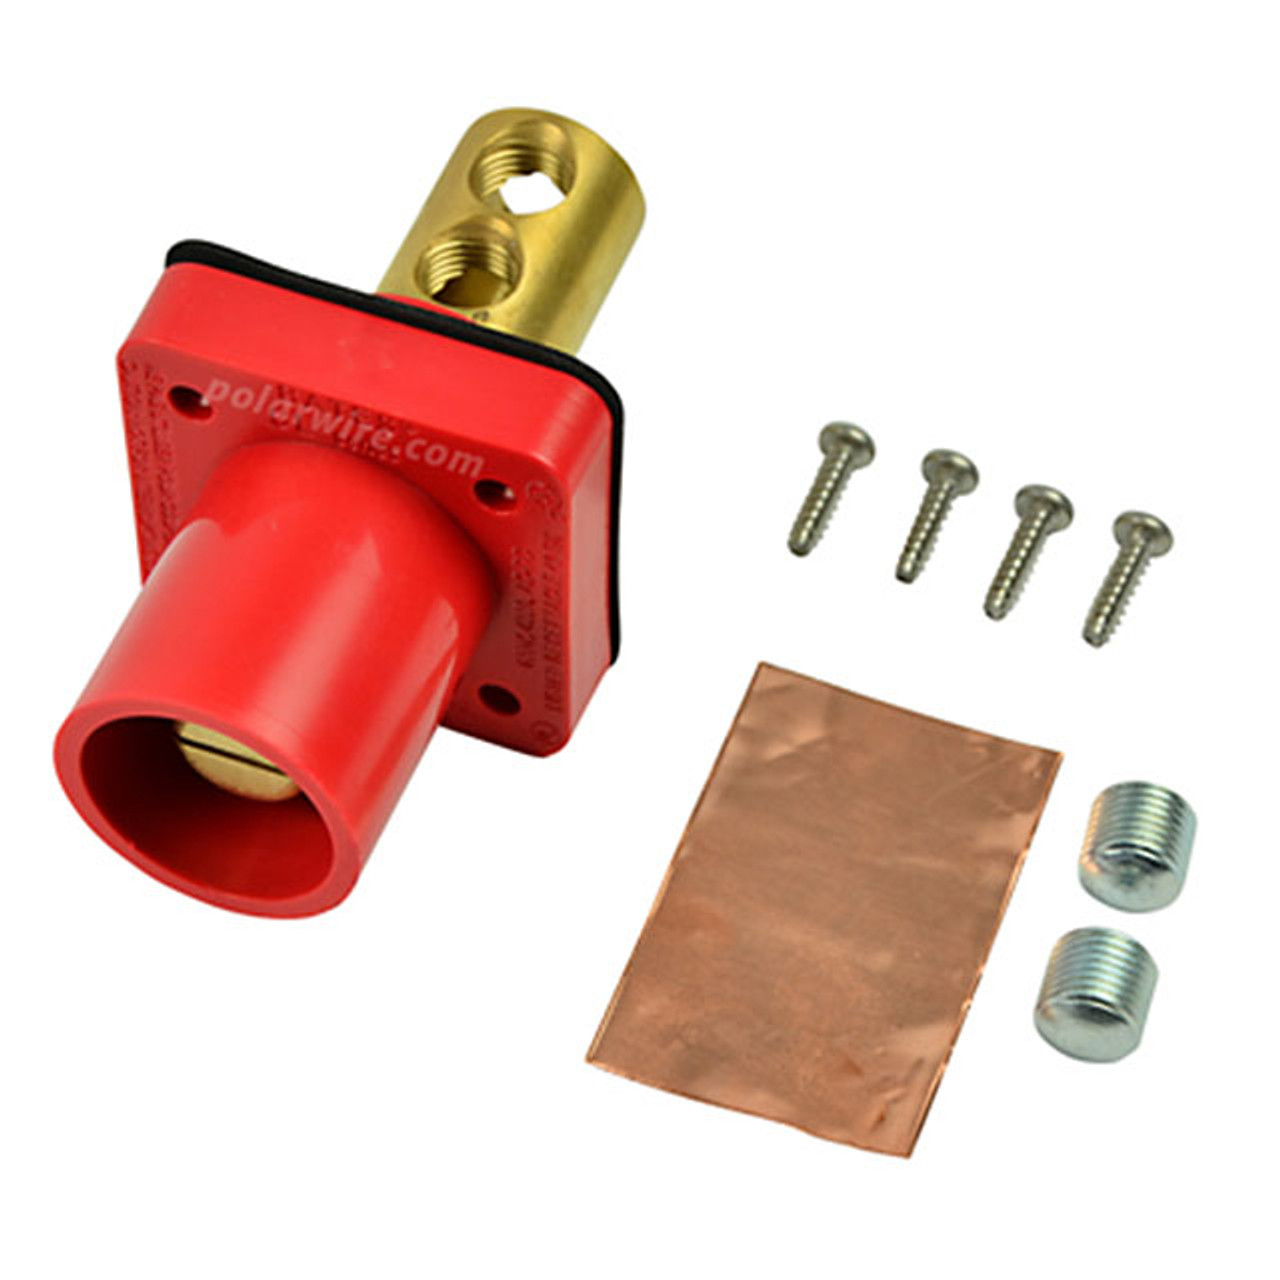 Marinco red 400A CL 16 Series male single pin panel mount cam lock connector with set screw for 2-2/0 AWG cable